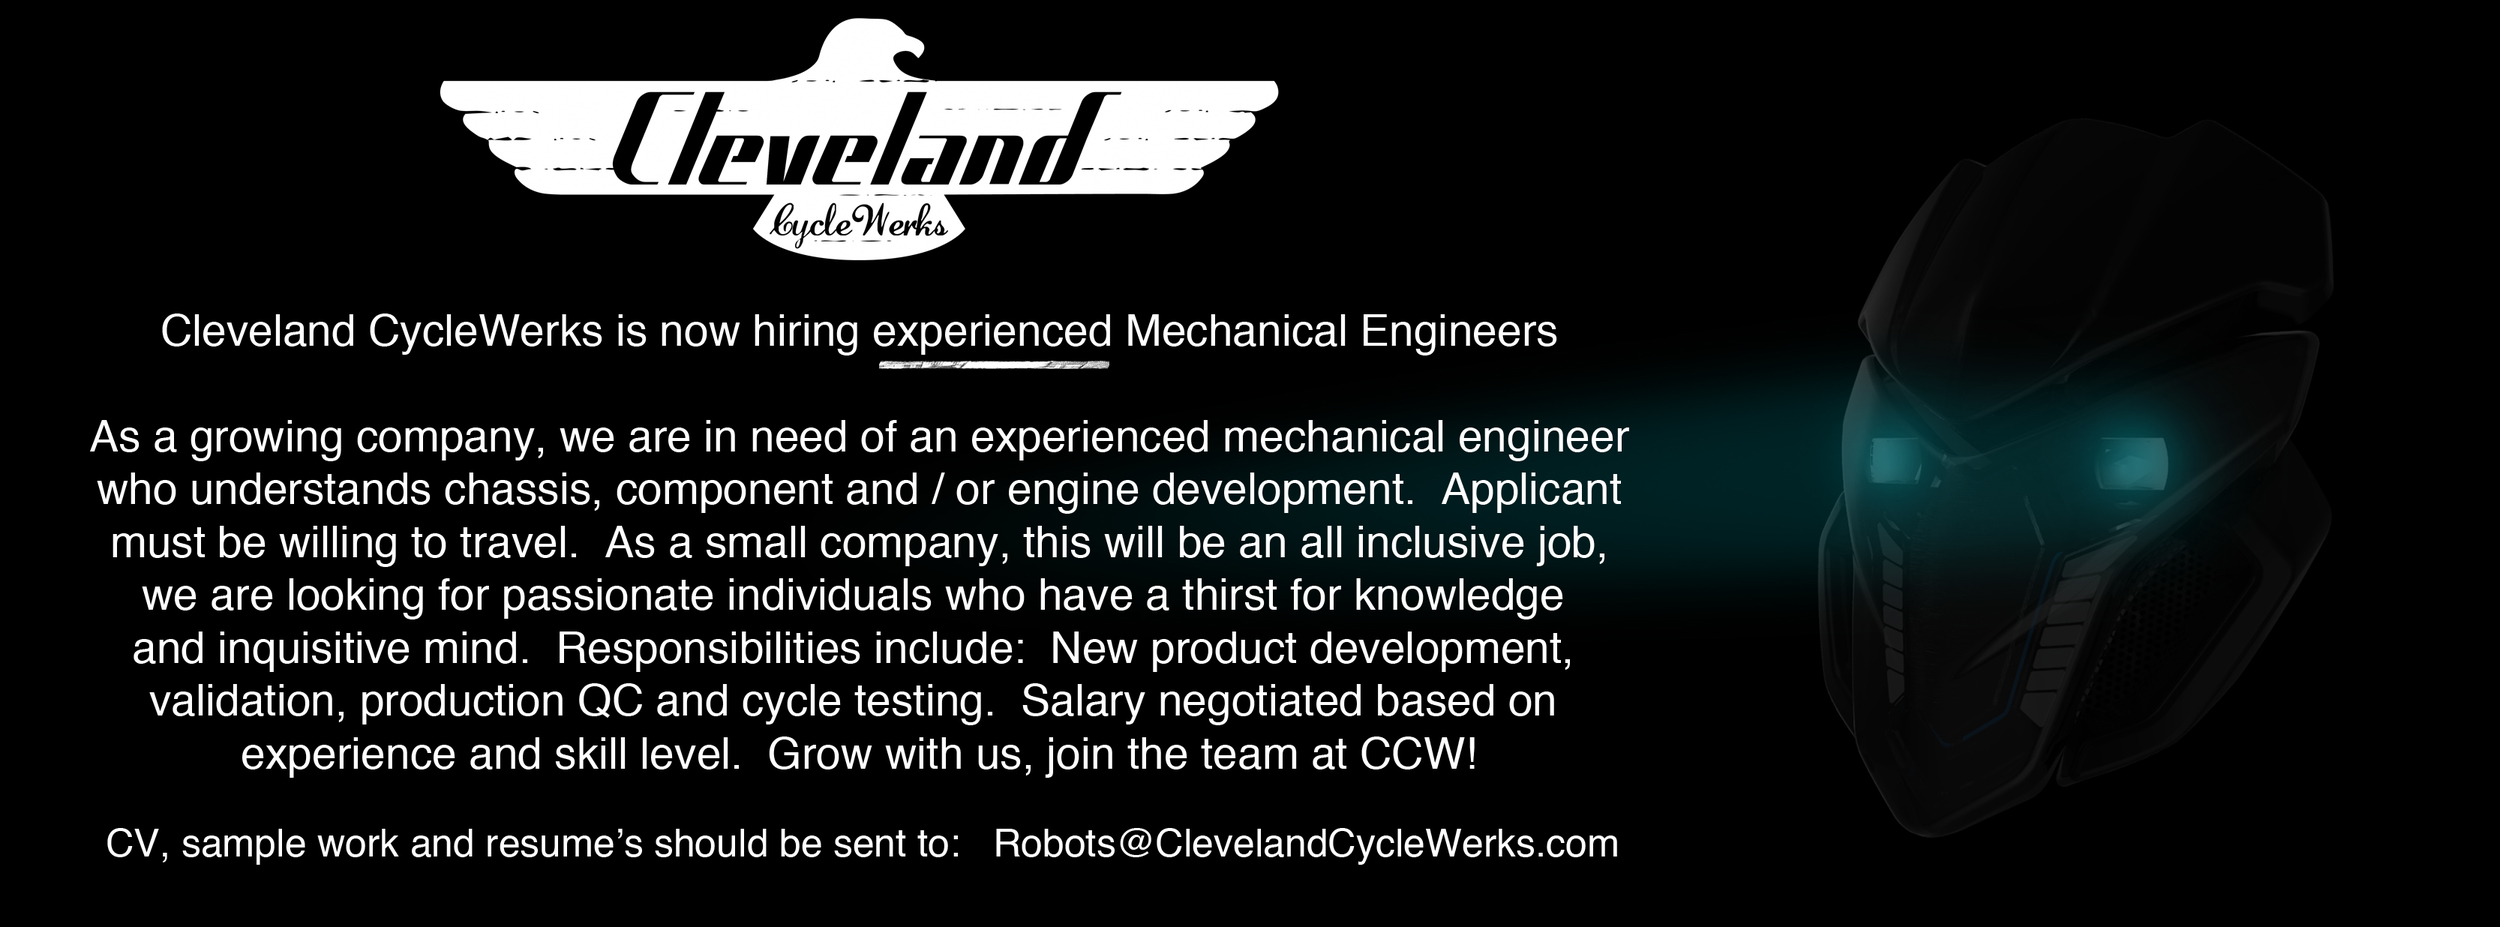 Cleveland now Hiring